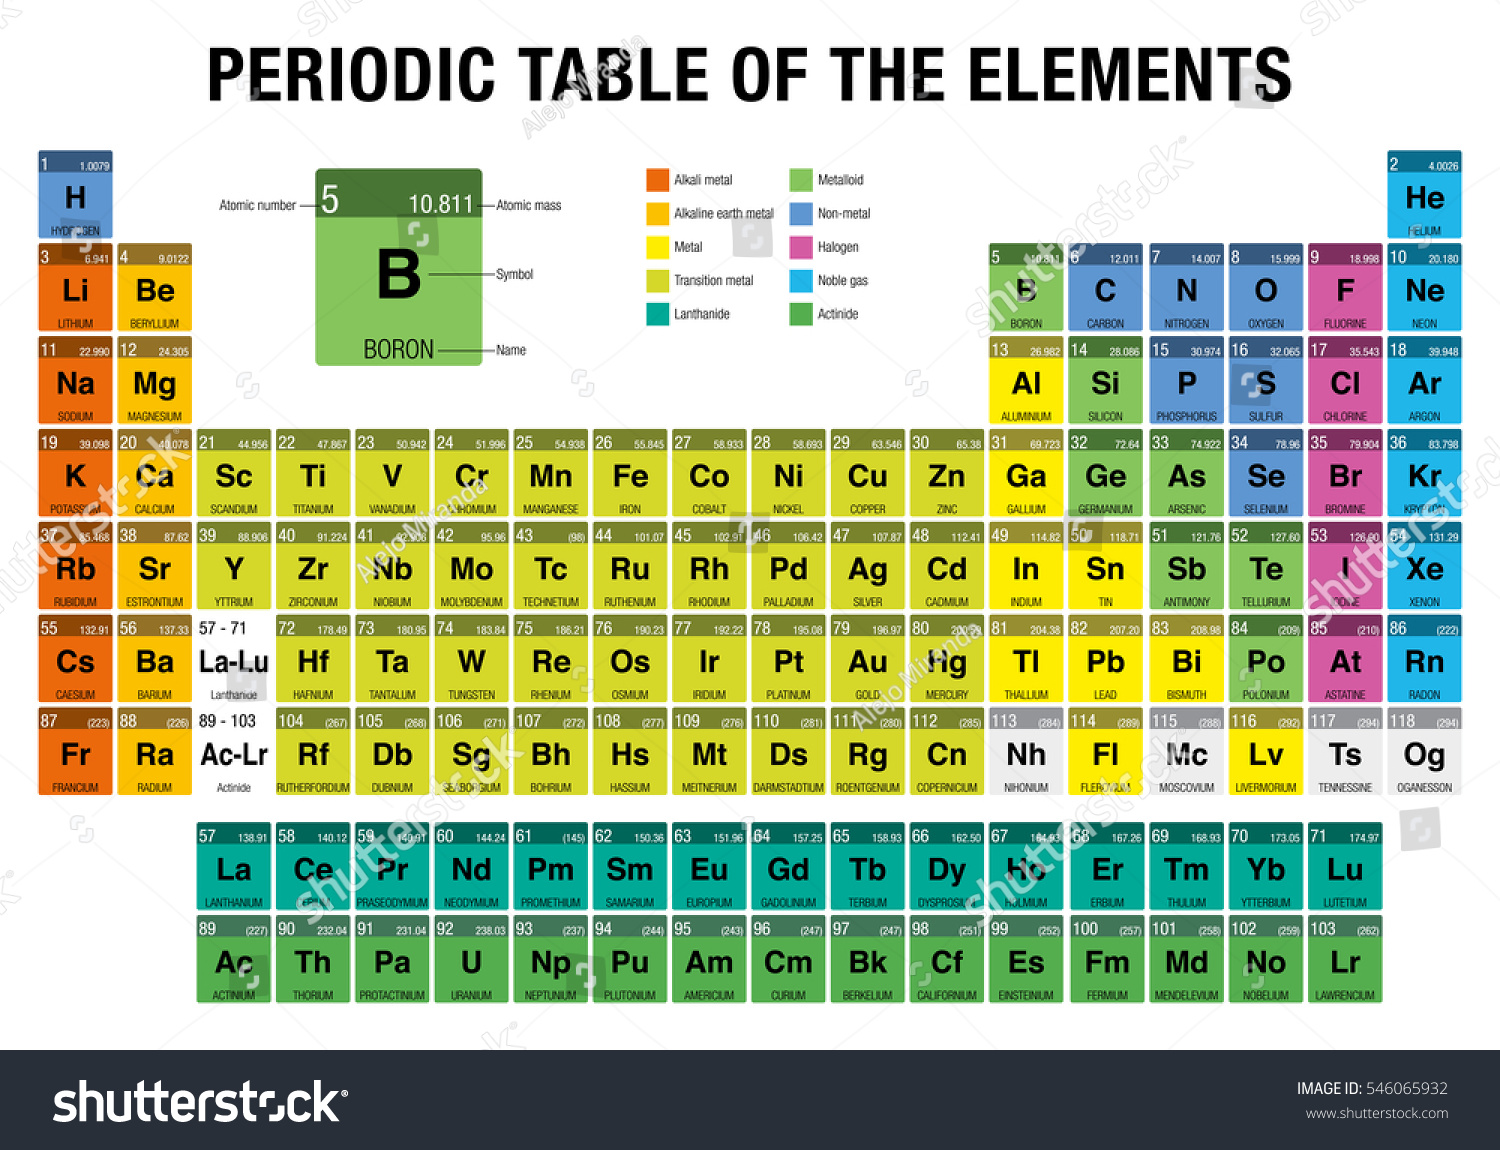 Periodic table elements 4 new elements stock vector 546065932 periodic table of the elements with the 4 new elements nihonium moscovium tennessine gamestrikefo Gallery